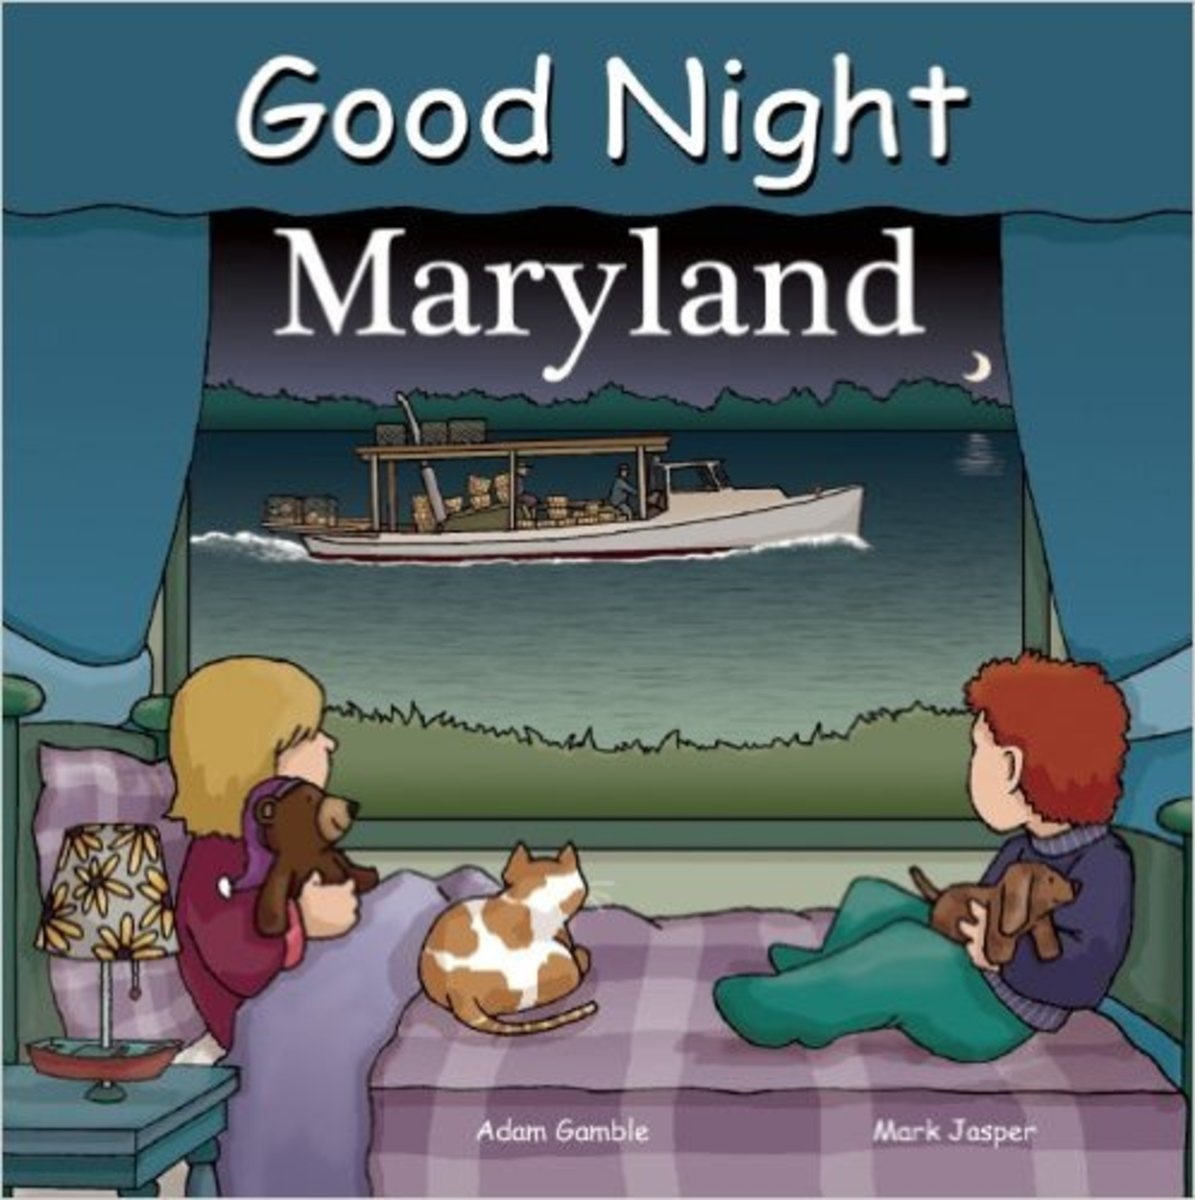 Good Night Maryland (Good Night Our World) Board book by Adam Gamble - Image credits: amazon.com